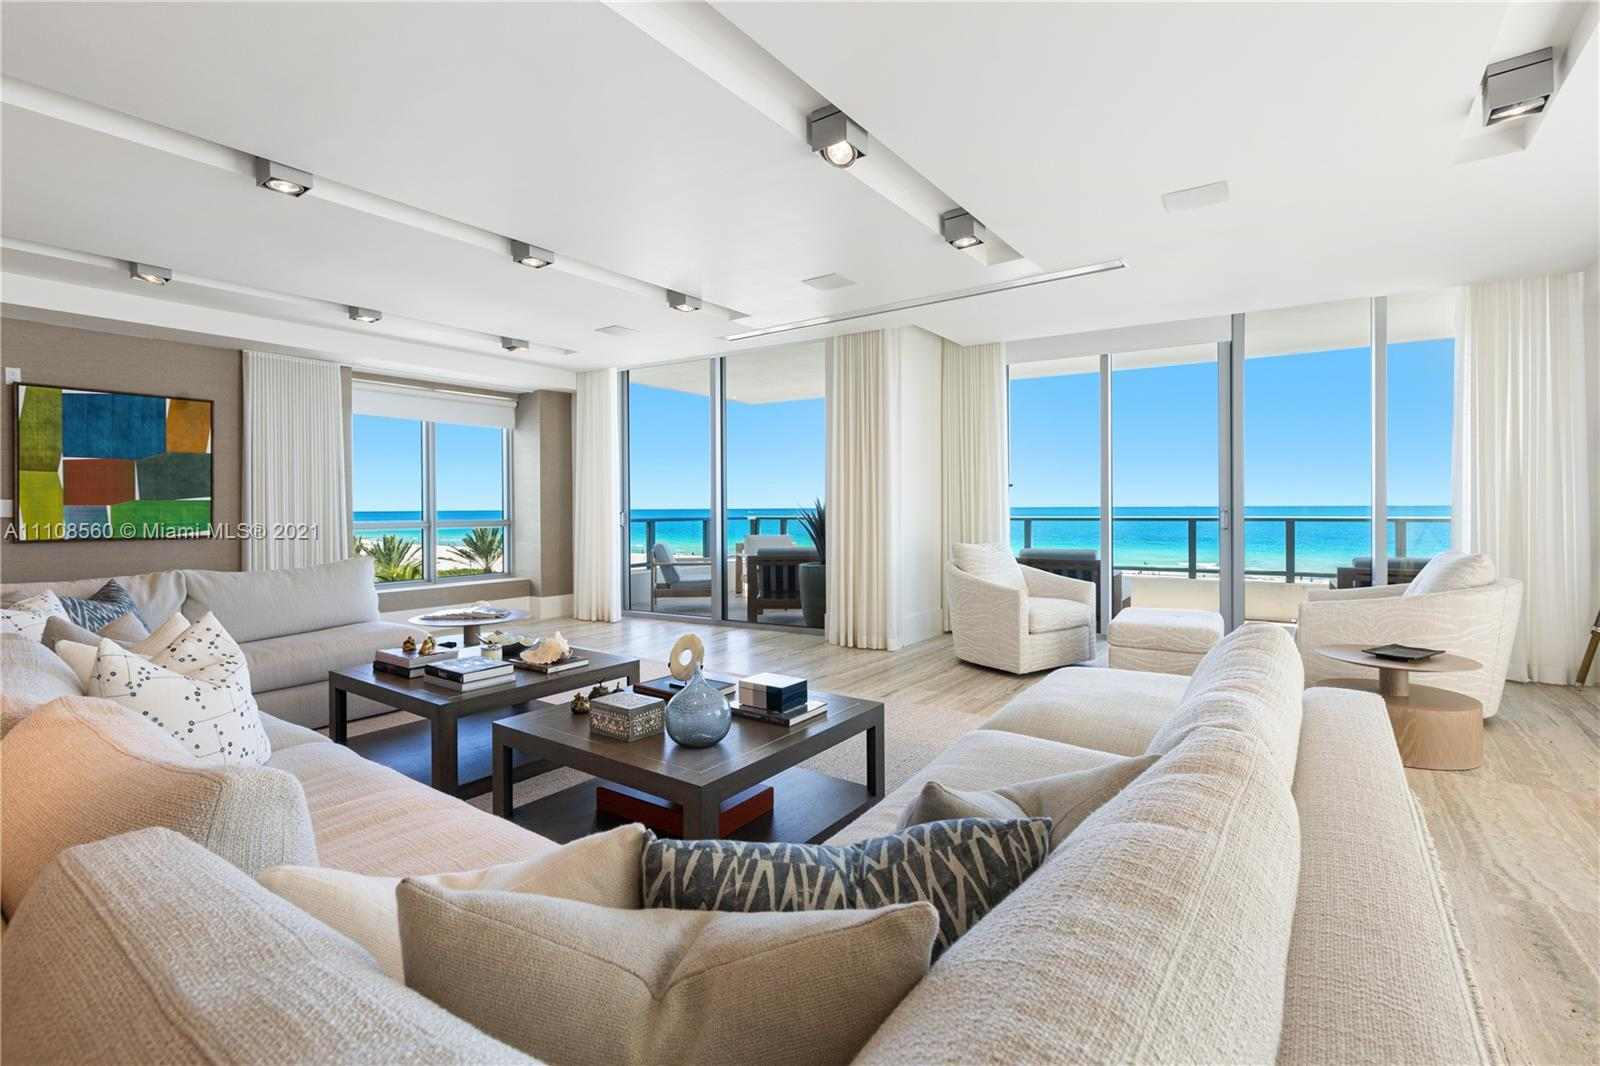 MALIBU-STYLE OCEANFRONT LIVING AT THE ULTRA SOPHISTICATED BOUTIQUE BUILDING OCEAN HOUSE CURATED BY A